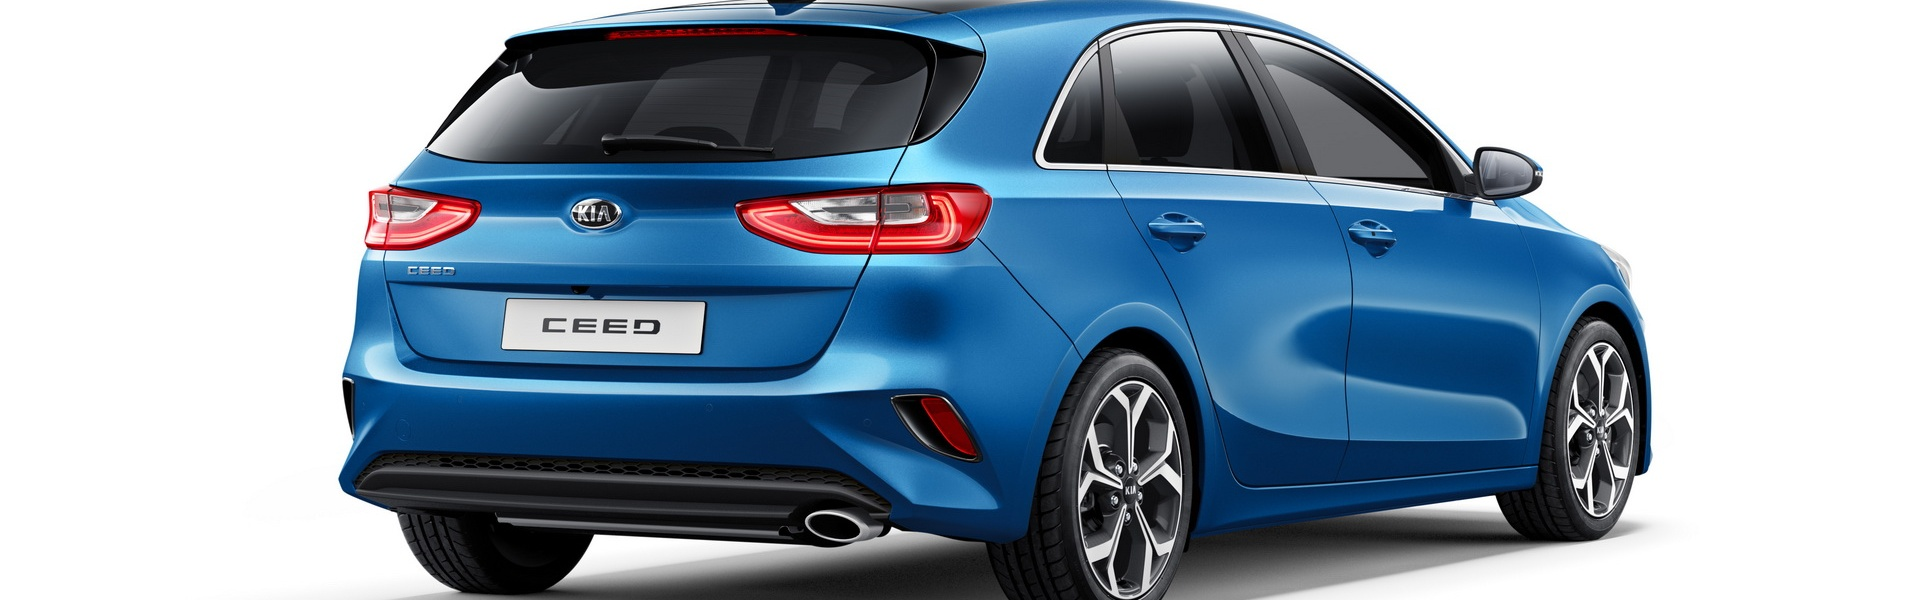 2018-kia-ceed-hatch-unveiled-112.jpg